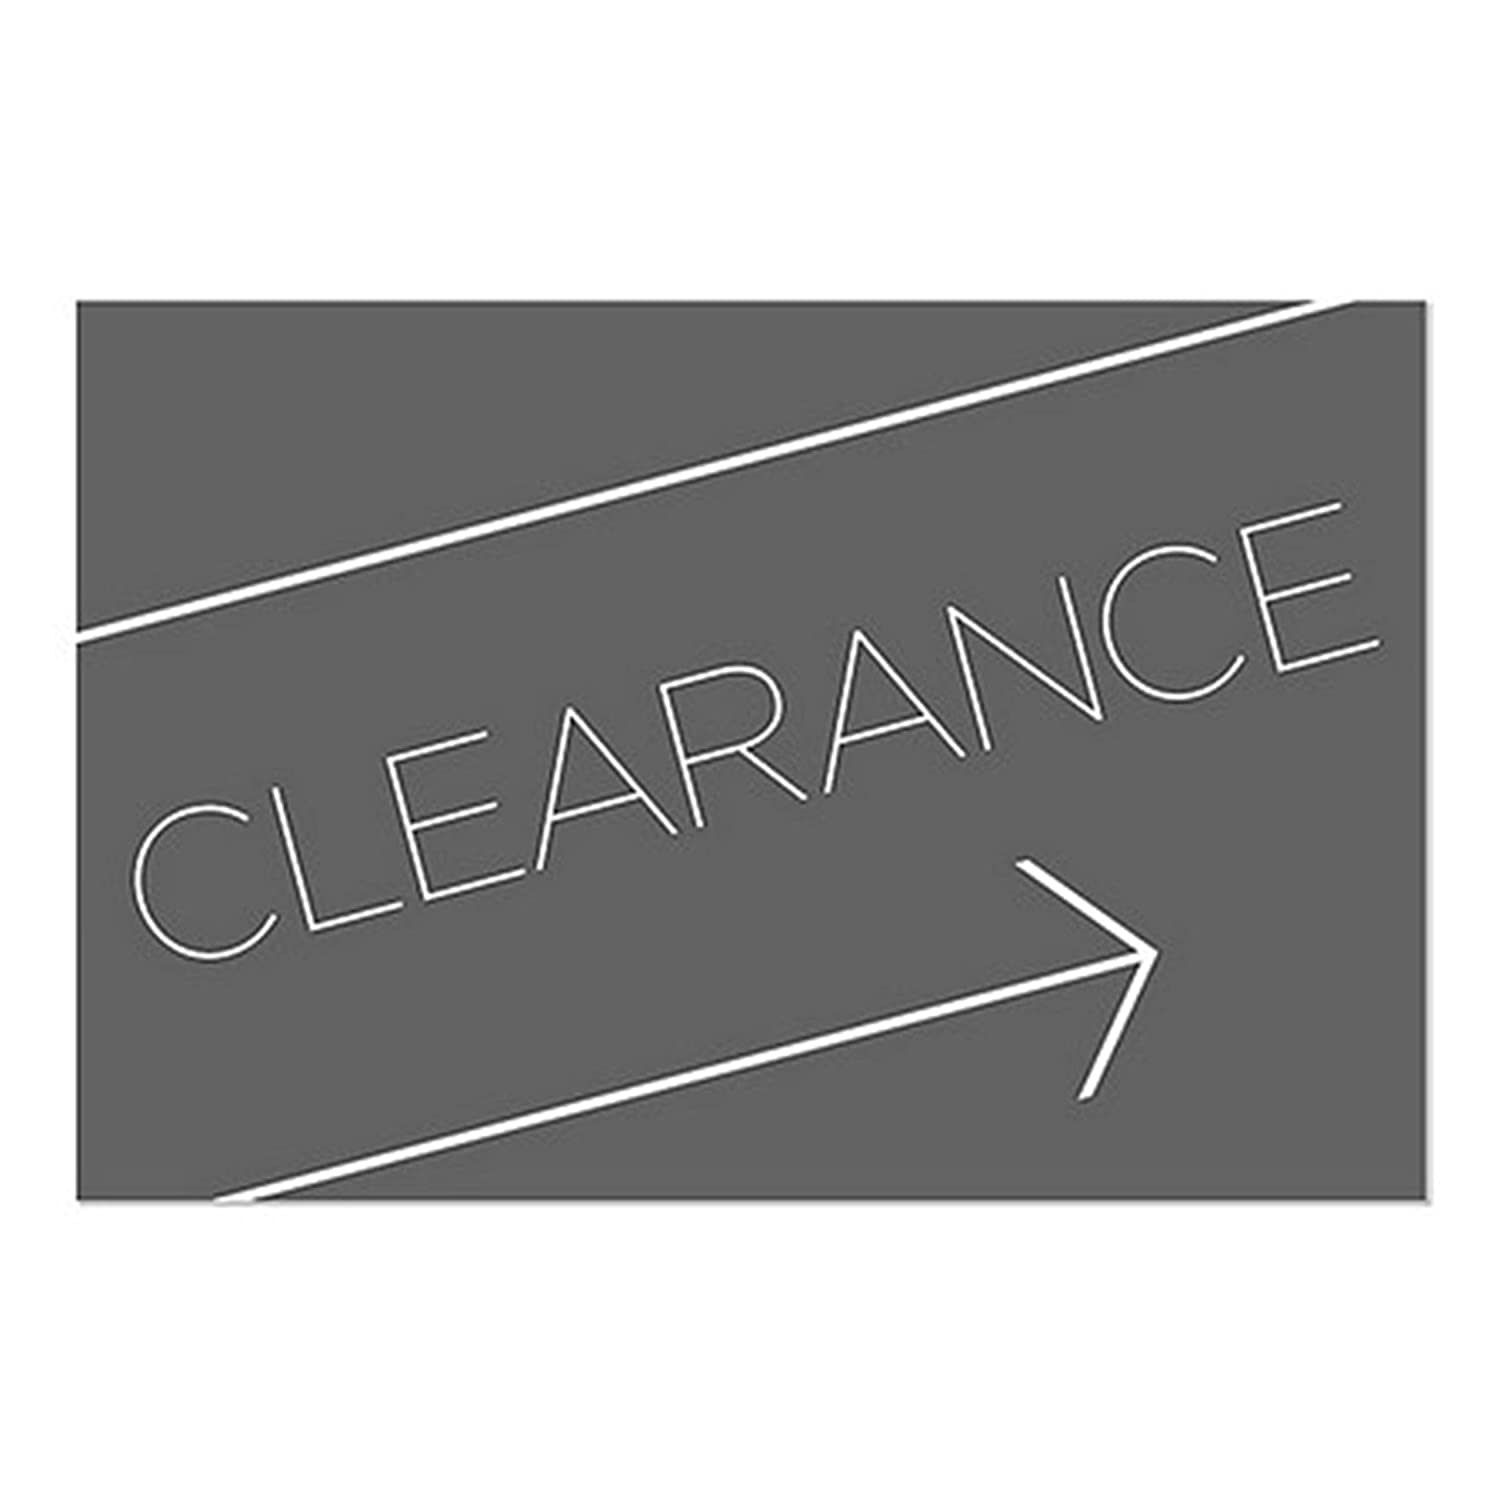 Pack of 5 Adhesive Window Decal CGSignLab 2455064/_5gfxw/_27x18/_None Clearance Vinyl Basic Black Repositionable Opaque White 1st Surface Static Cling Non 27 x 18